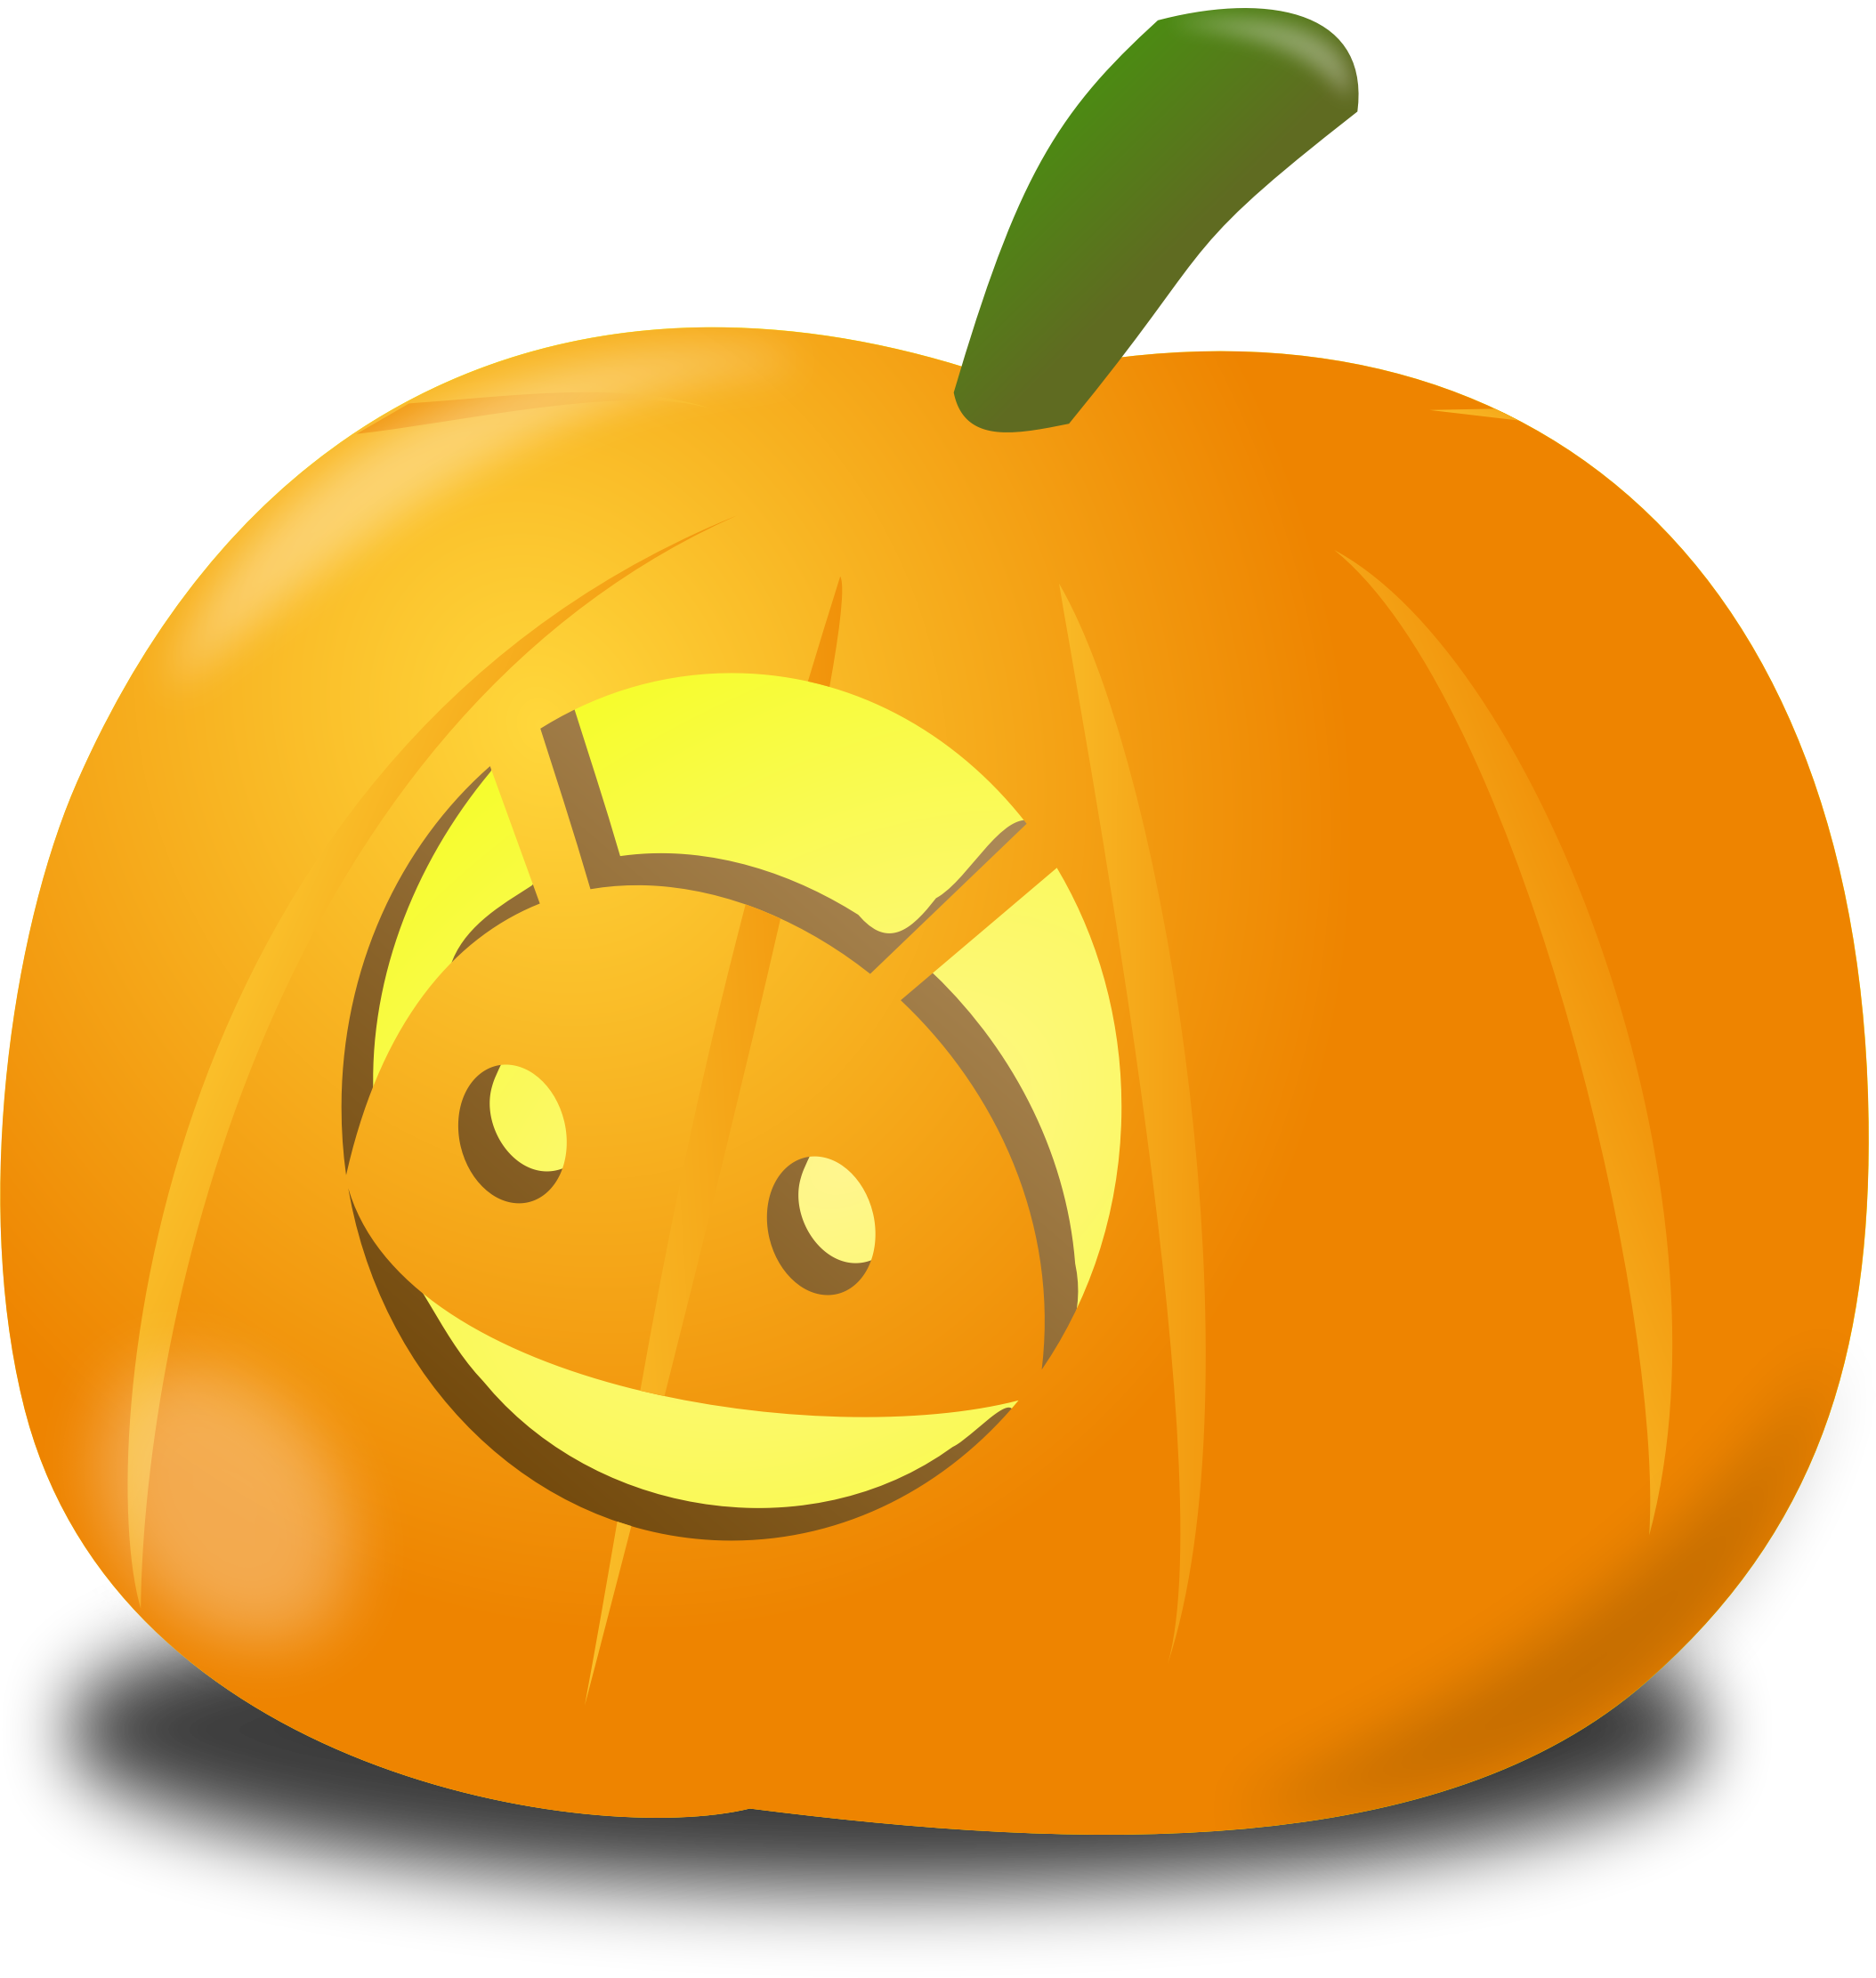 Android pumpkin by nicubunu